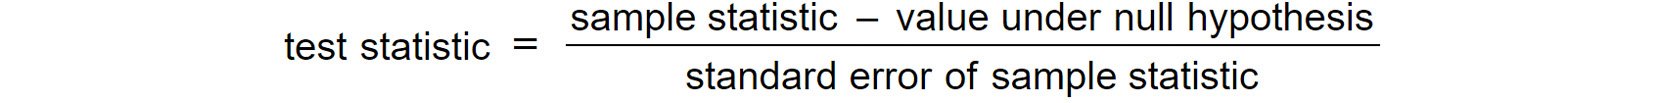 Figure 1.9: The formula for the test statistic